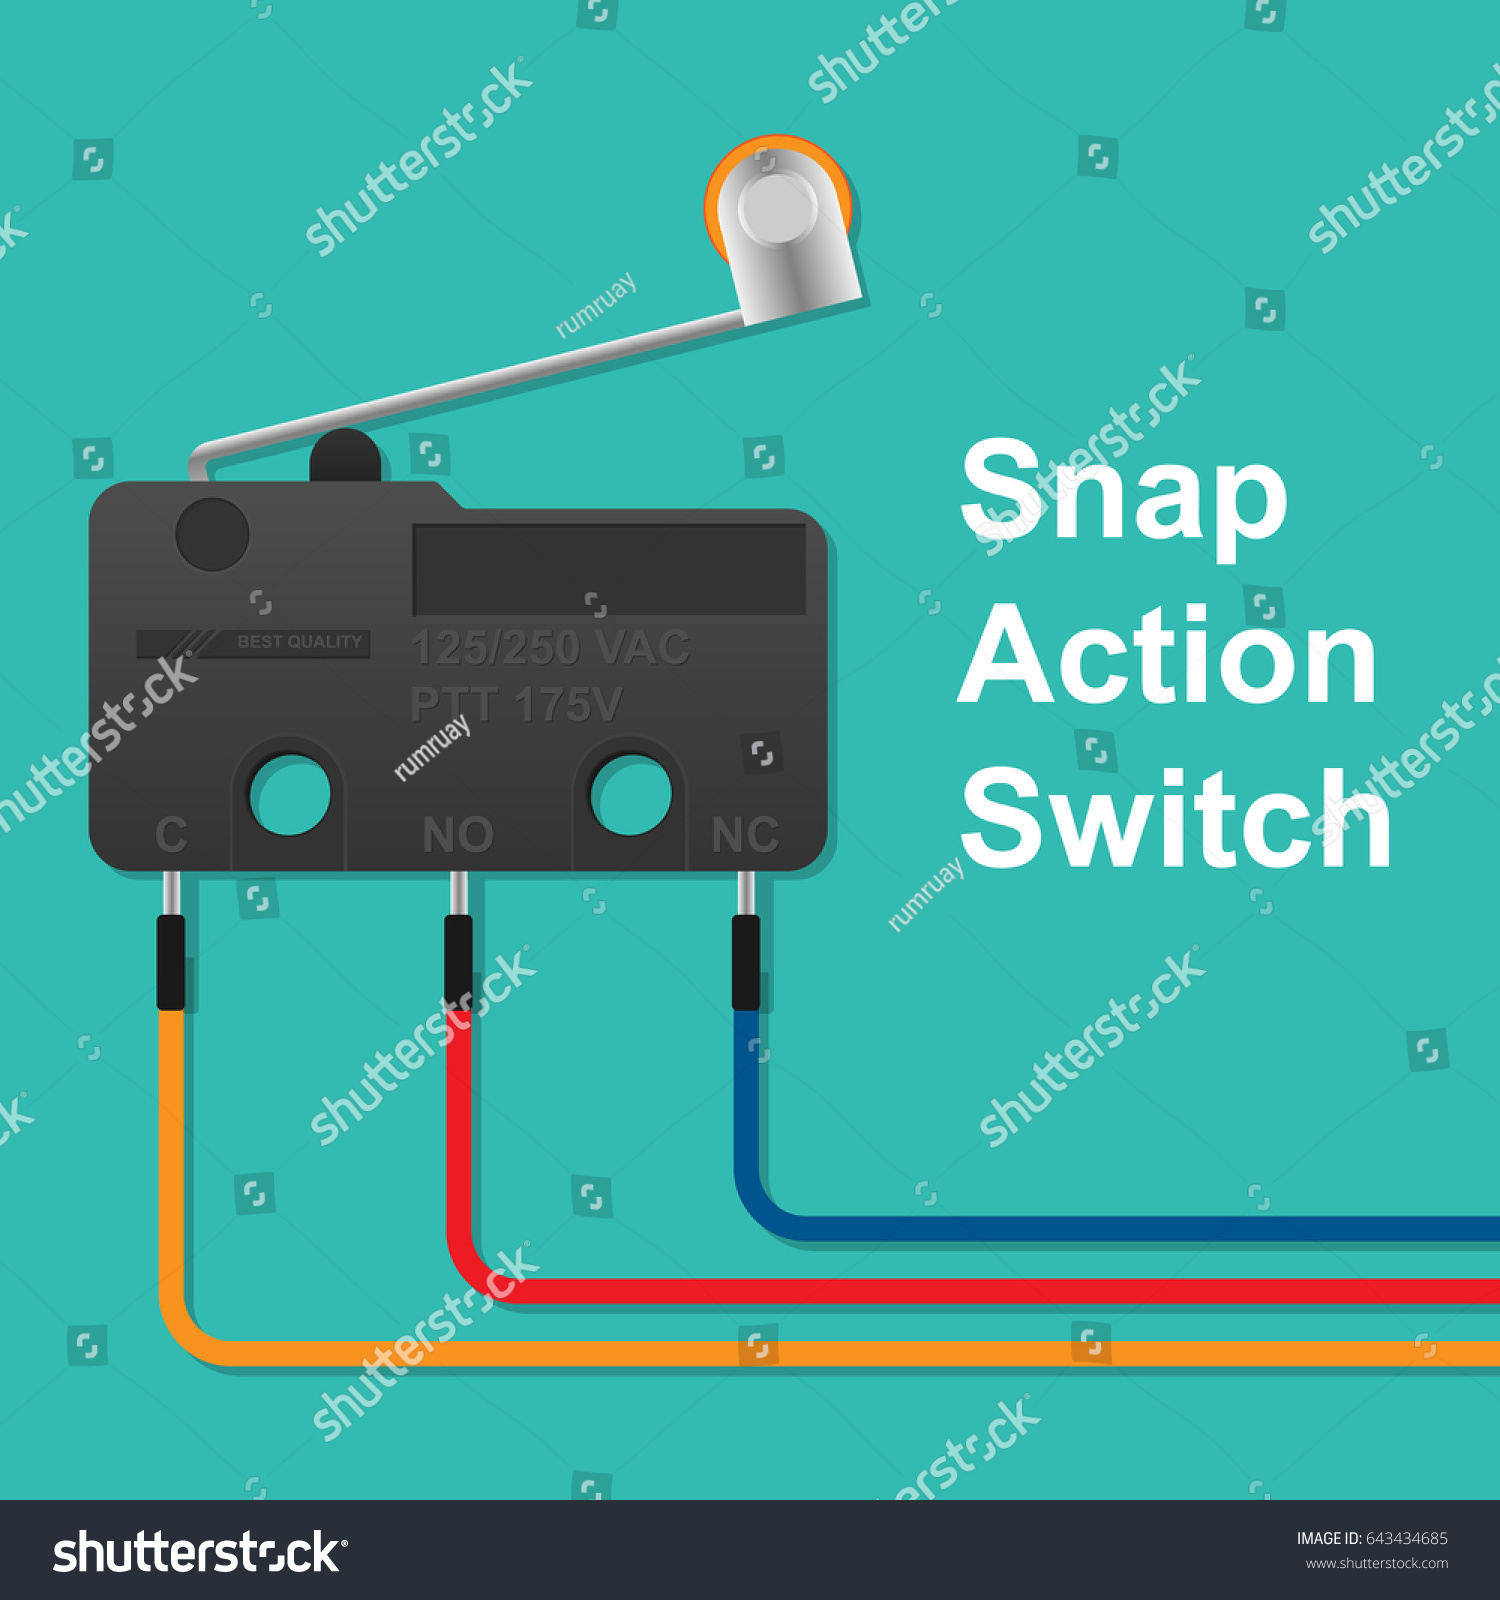 hight resolution of snap action switch wiring stock vector royalty free 643434685 snap action switch wiring a snap action switch wiring